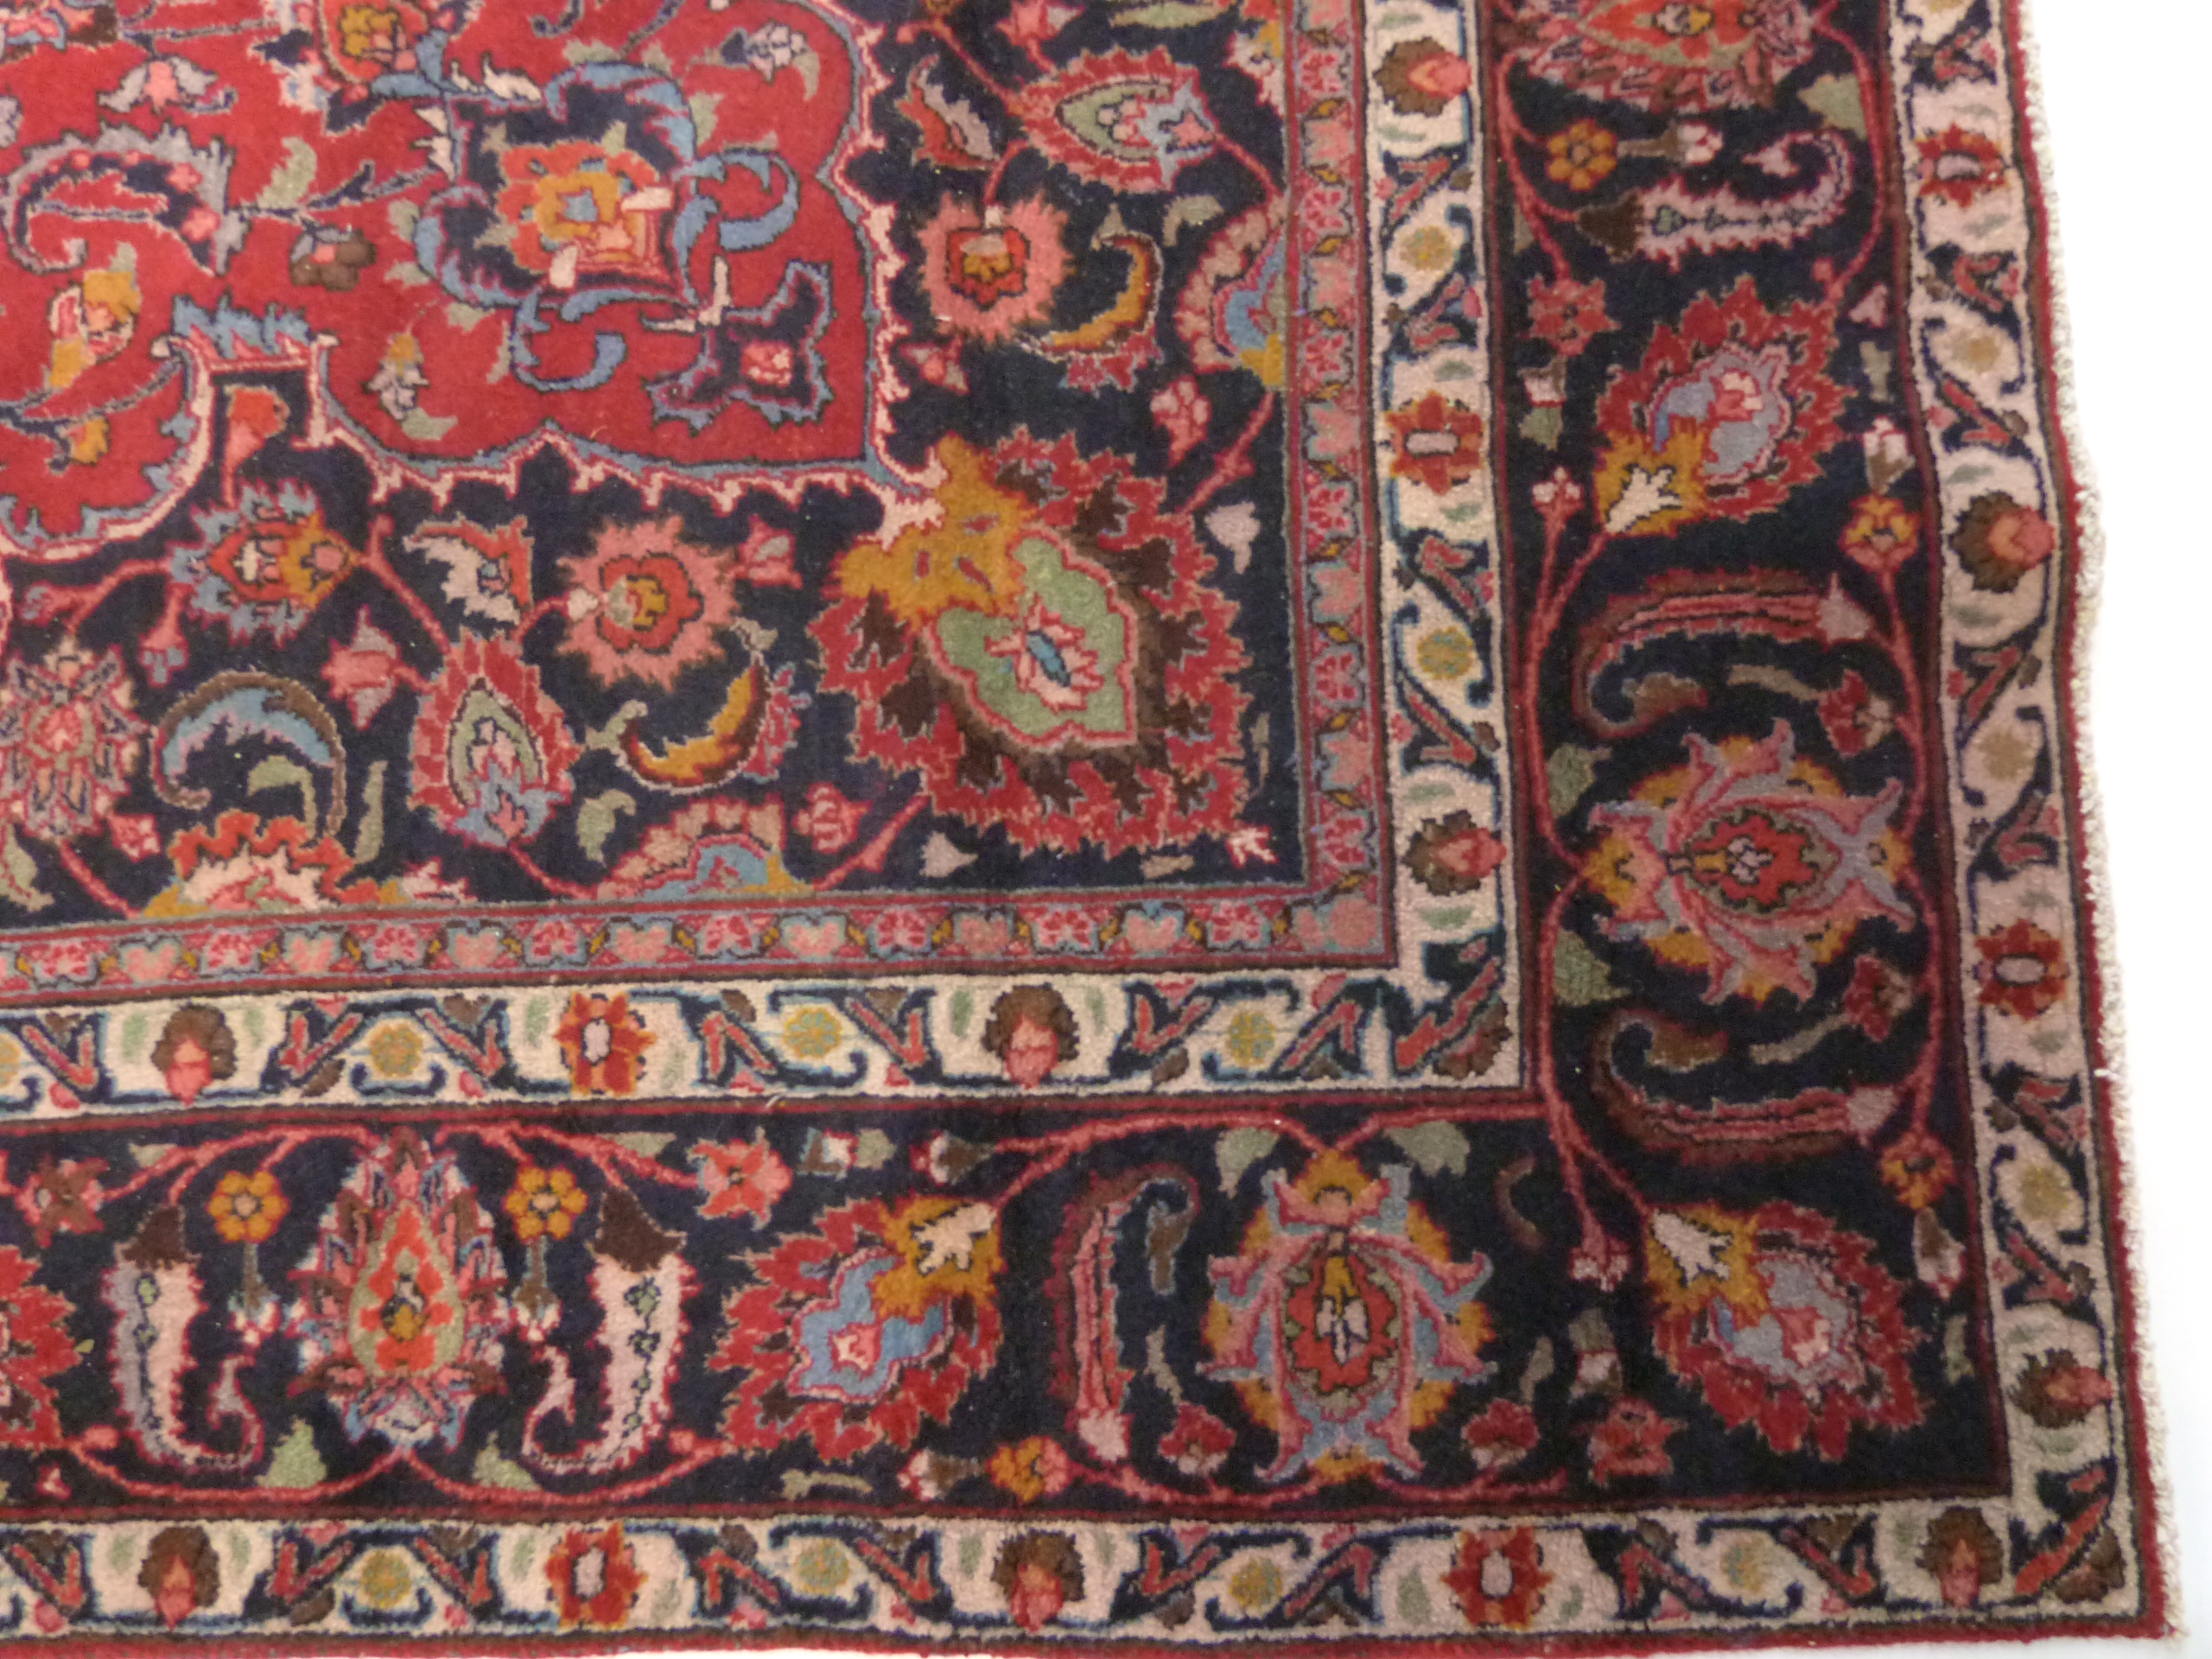 Large red ground Persian Mashad Carpet, mutlicoloured with traditional design 388cm x 270cm approx - Image 4 of 7